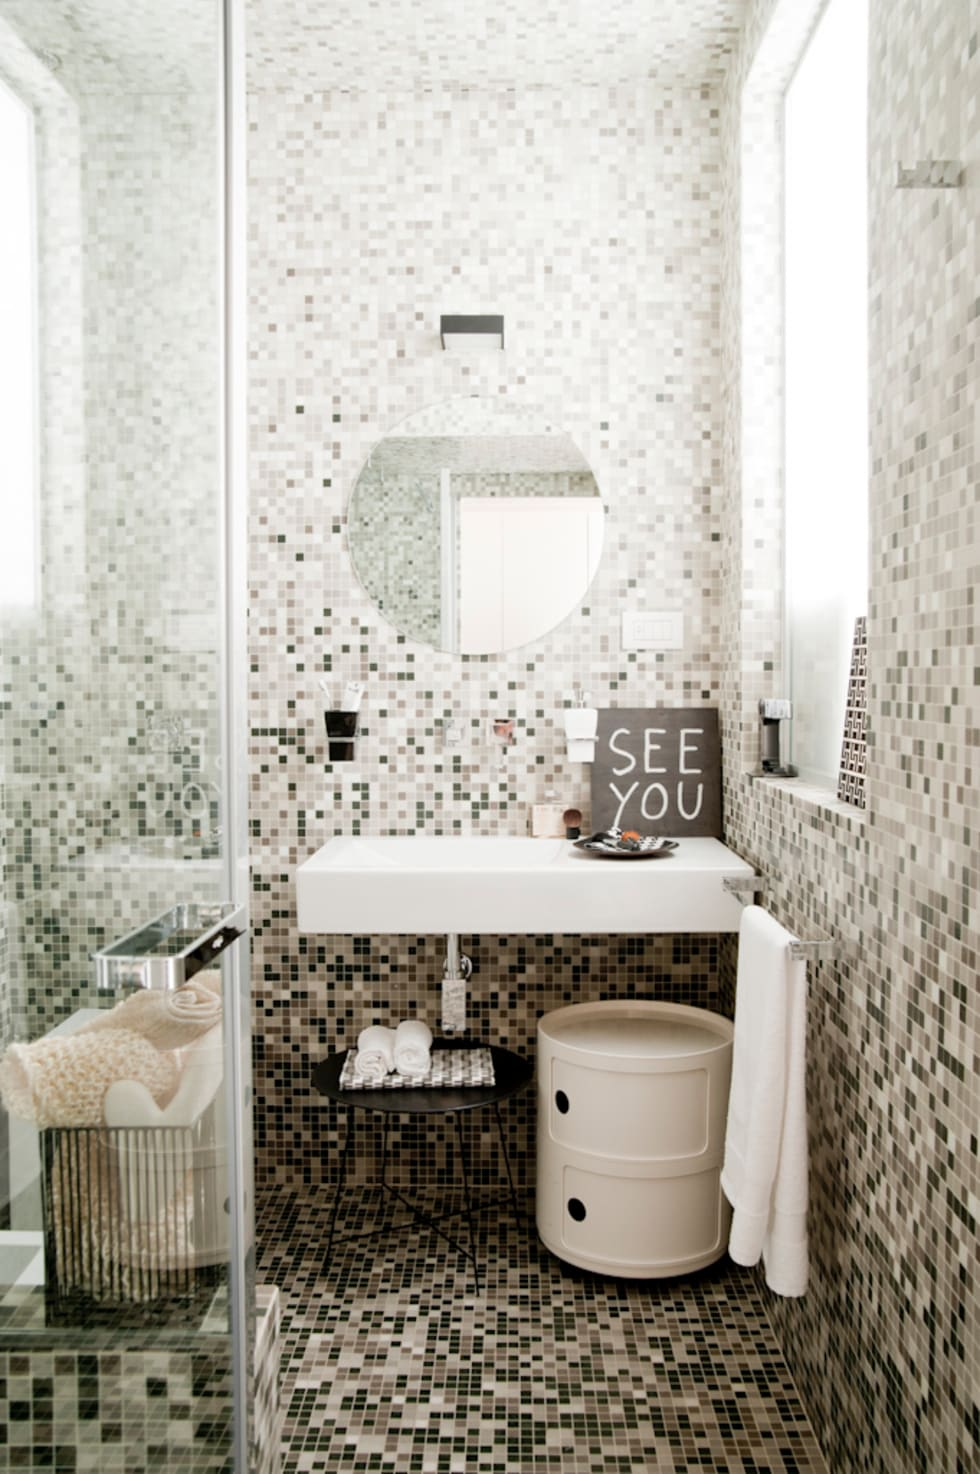 15 small bathrooms to inspire your next renovation